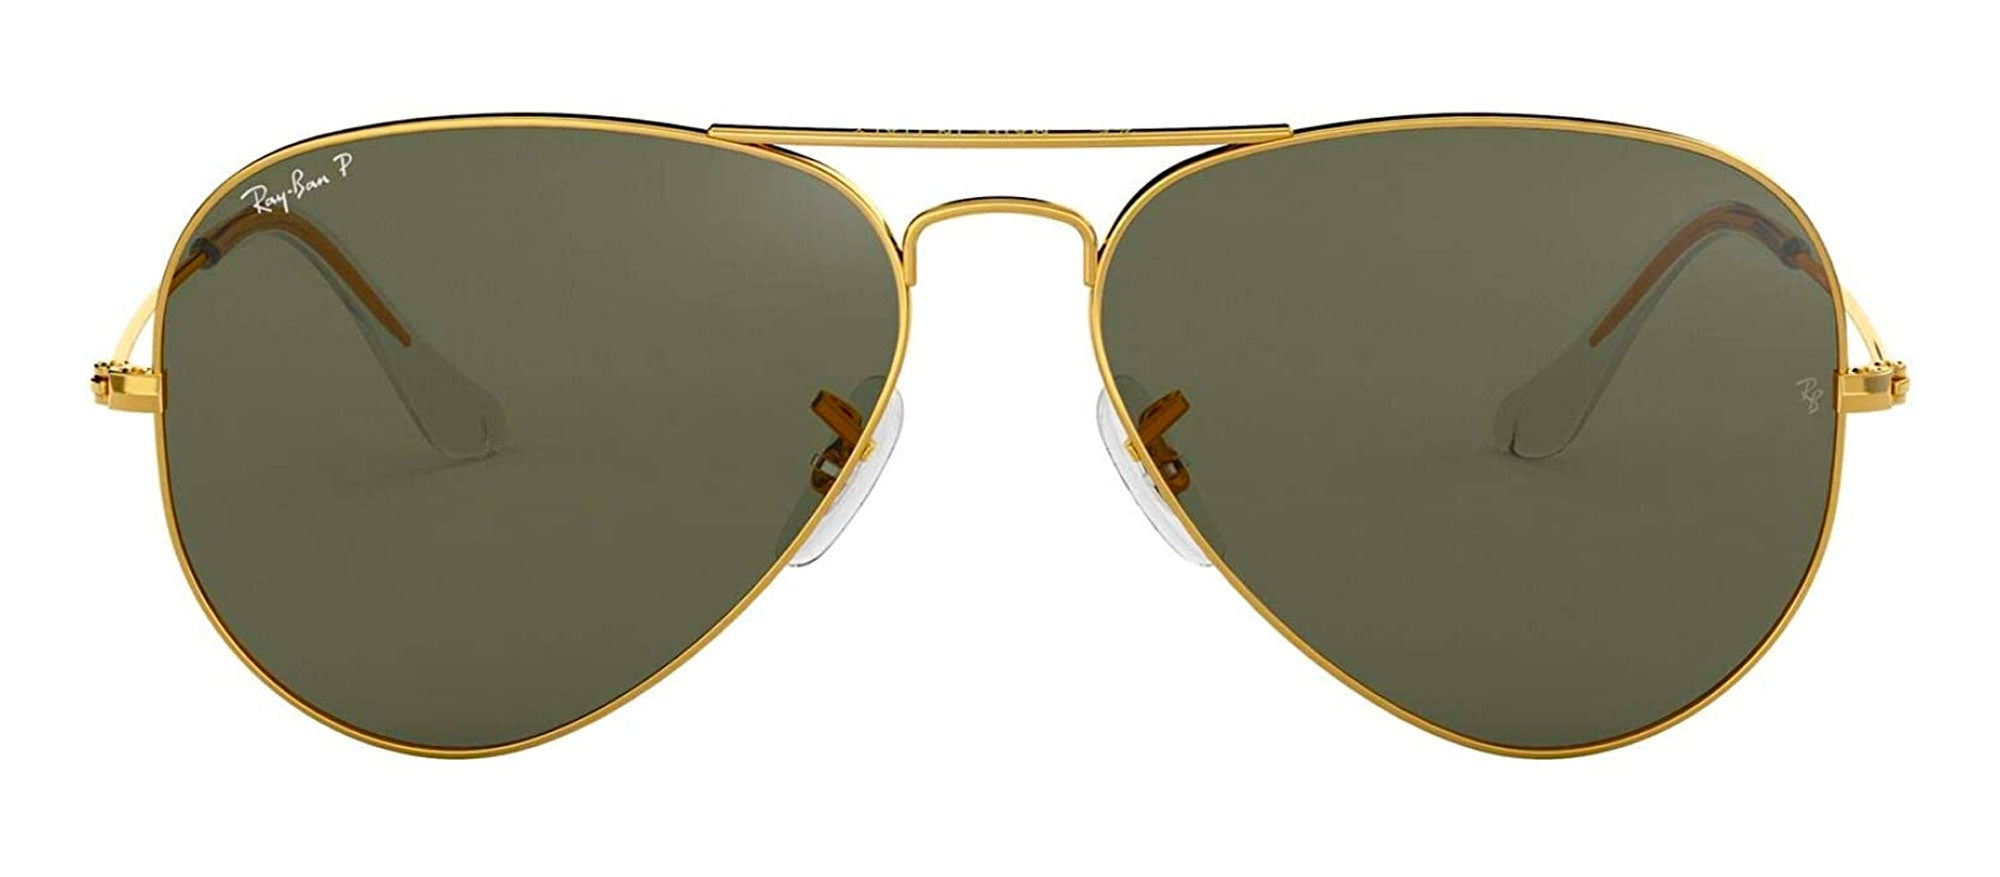 Ray-Ban RB3025 Aviator Classic Polarized Sunglasses